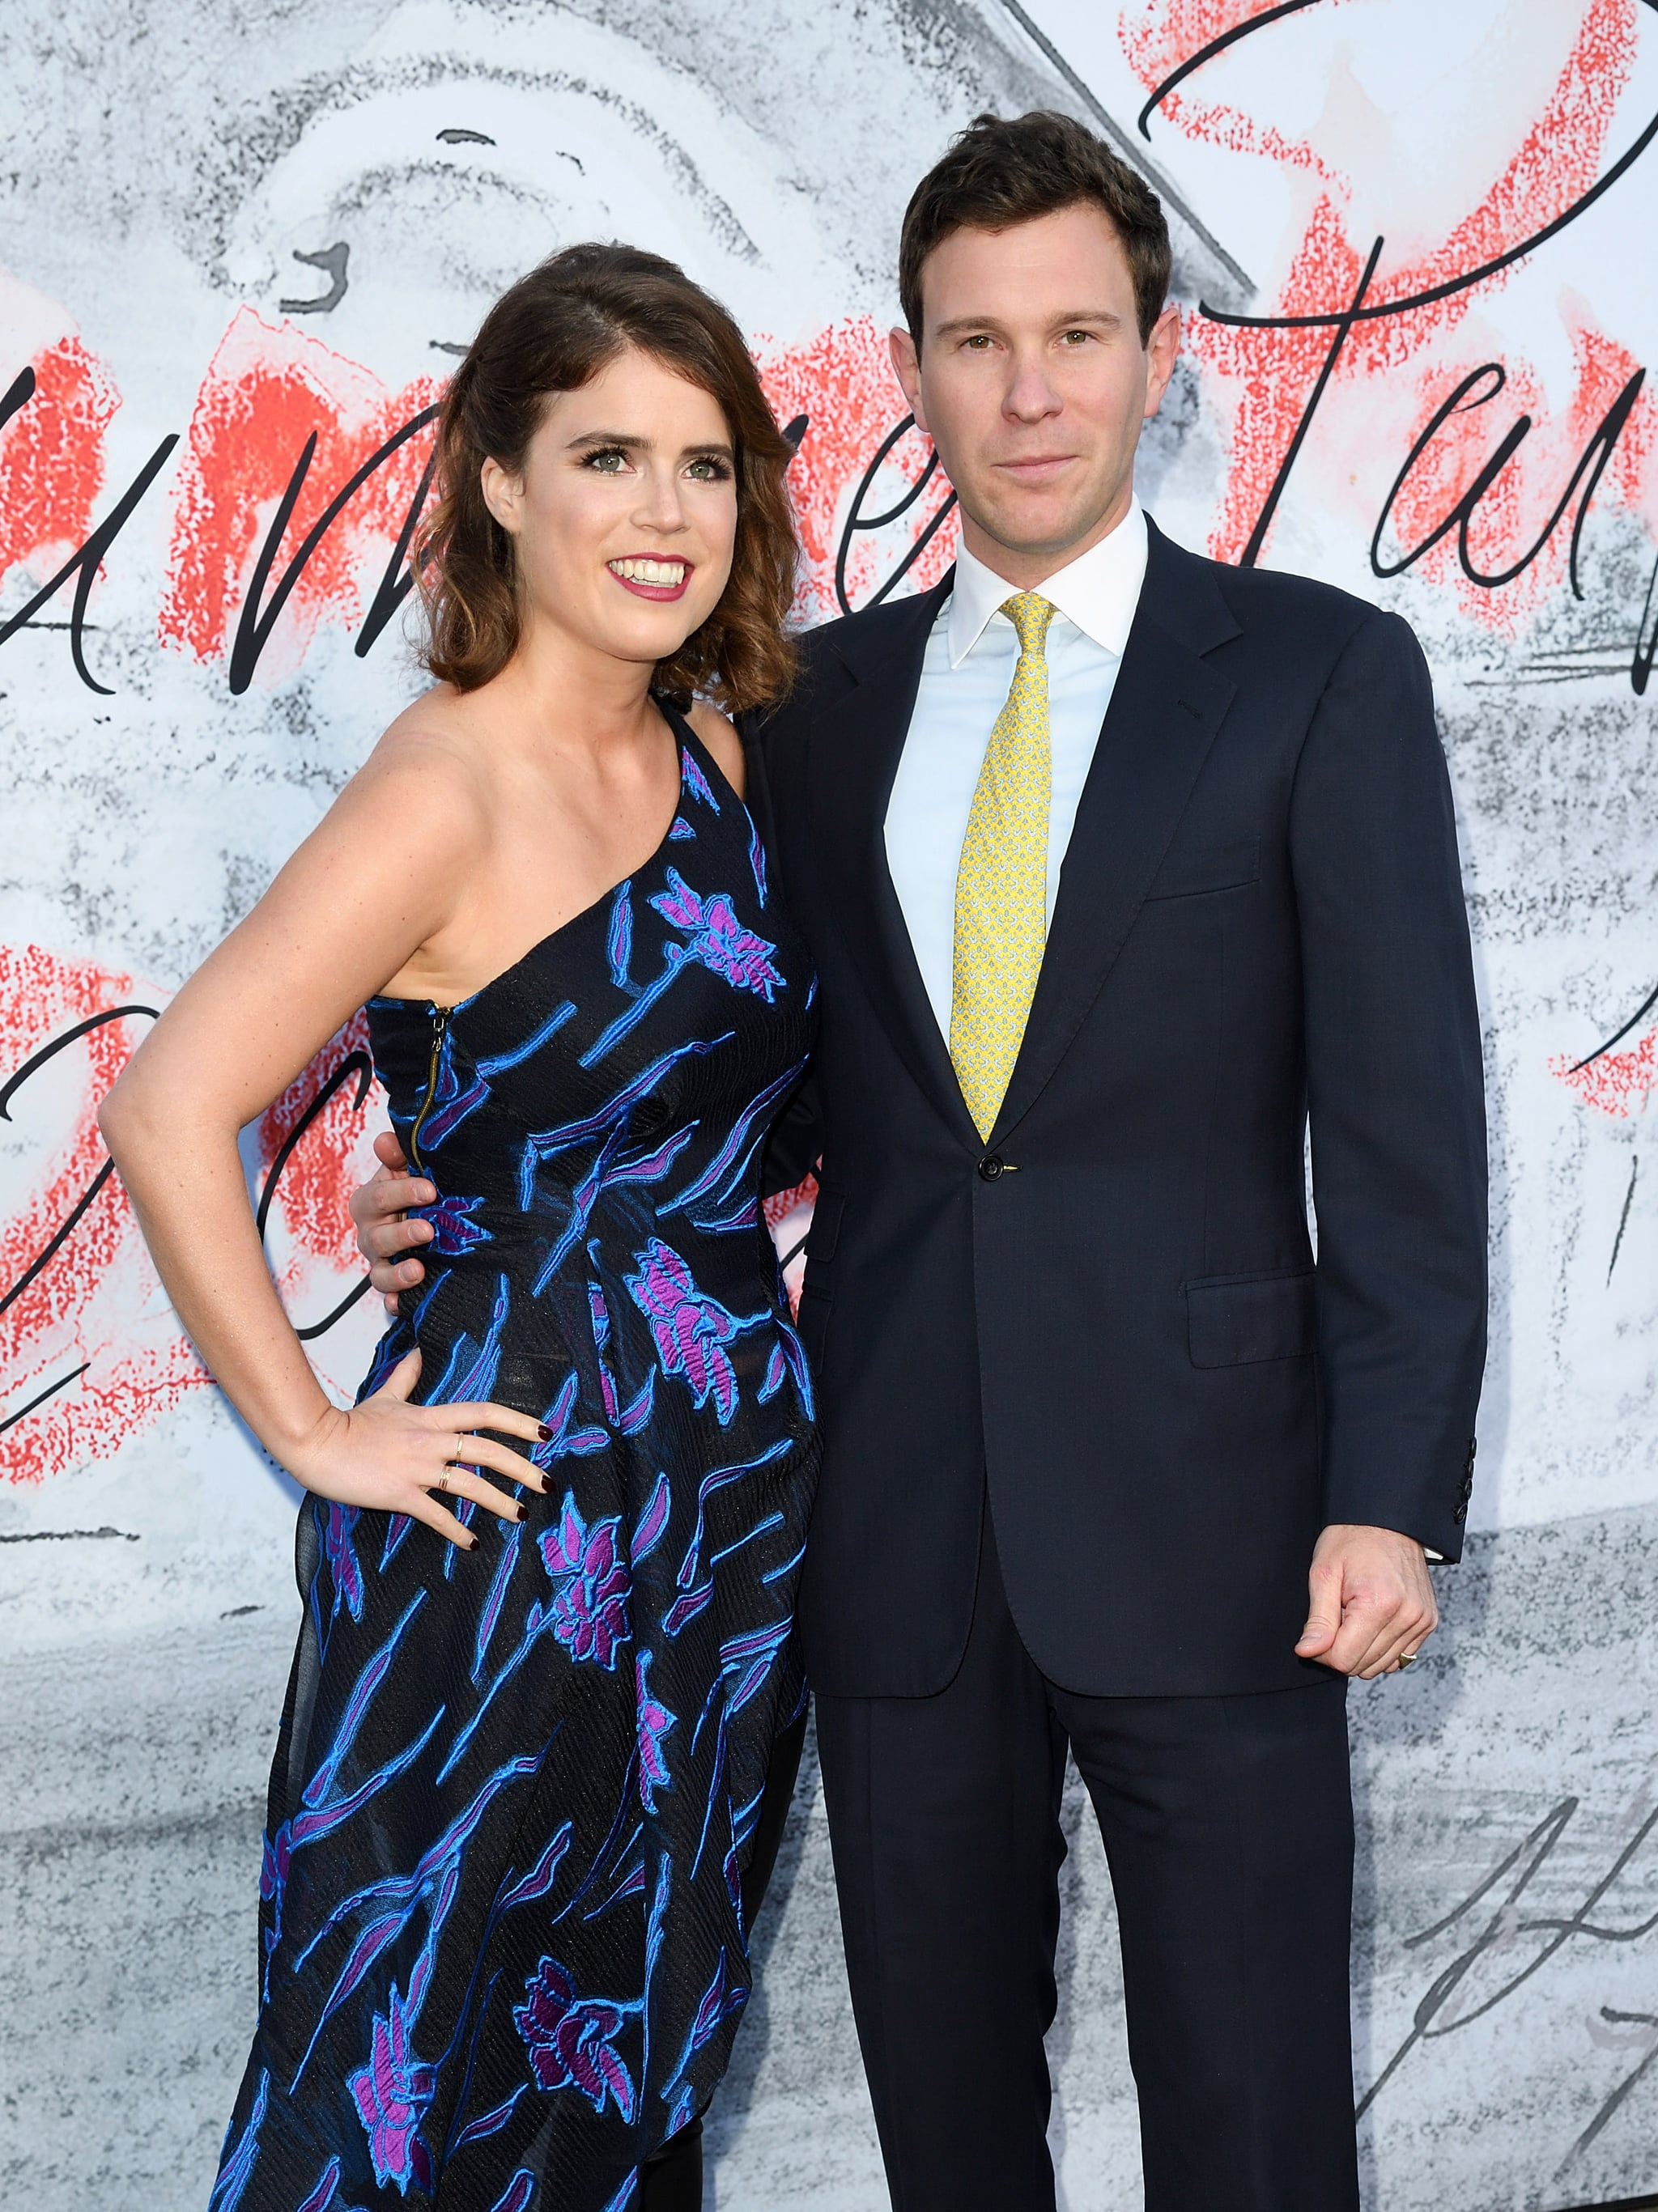 LONDON, ENGLAND - JUNE 19:  Princess Eugenie of York and Jack Brooksbank attend the Serpentine Gallery Summer Party at The Serpentine Gallery on June 19, 2018 in London, England.  (Photo by Karwai Tang/WireImage)